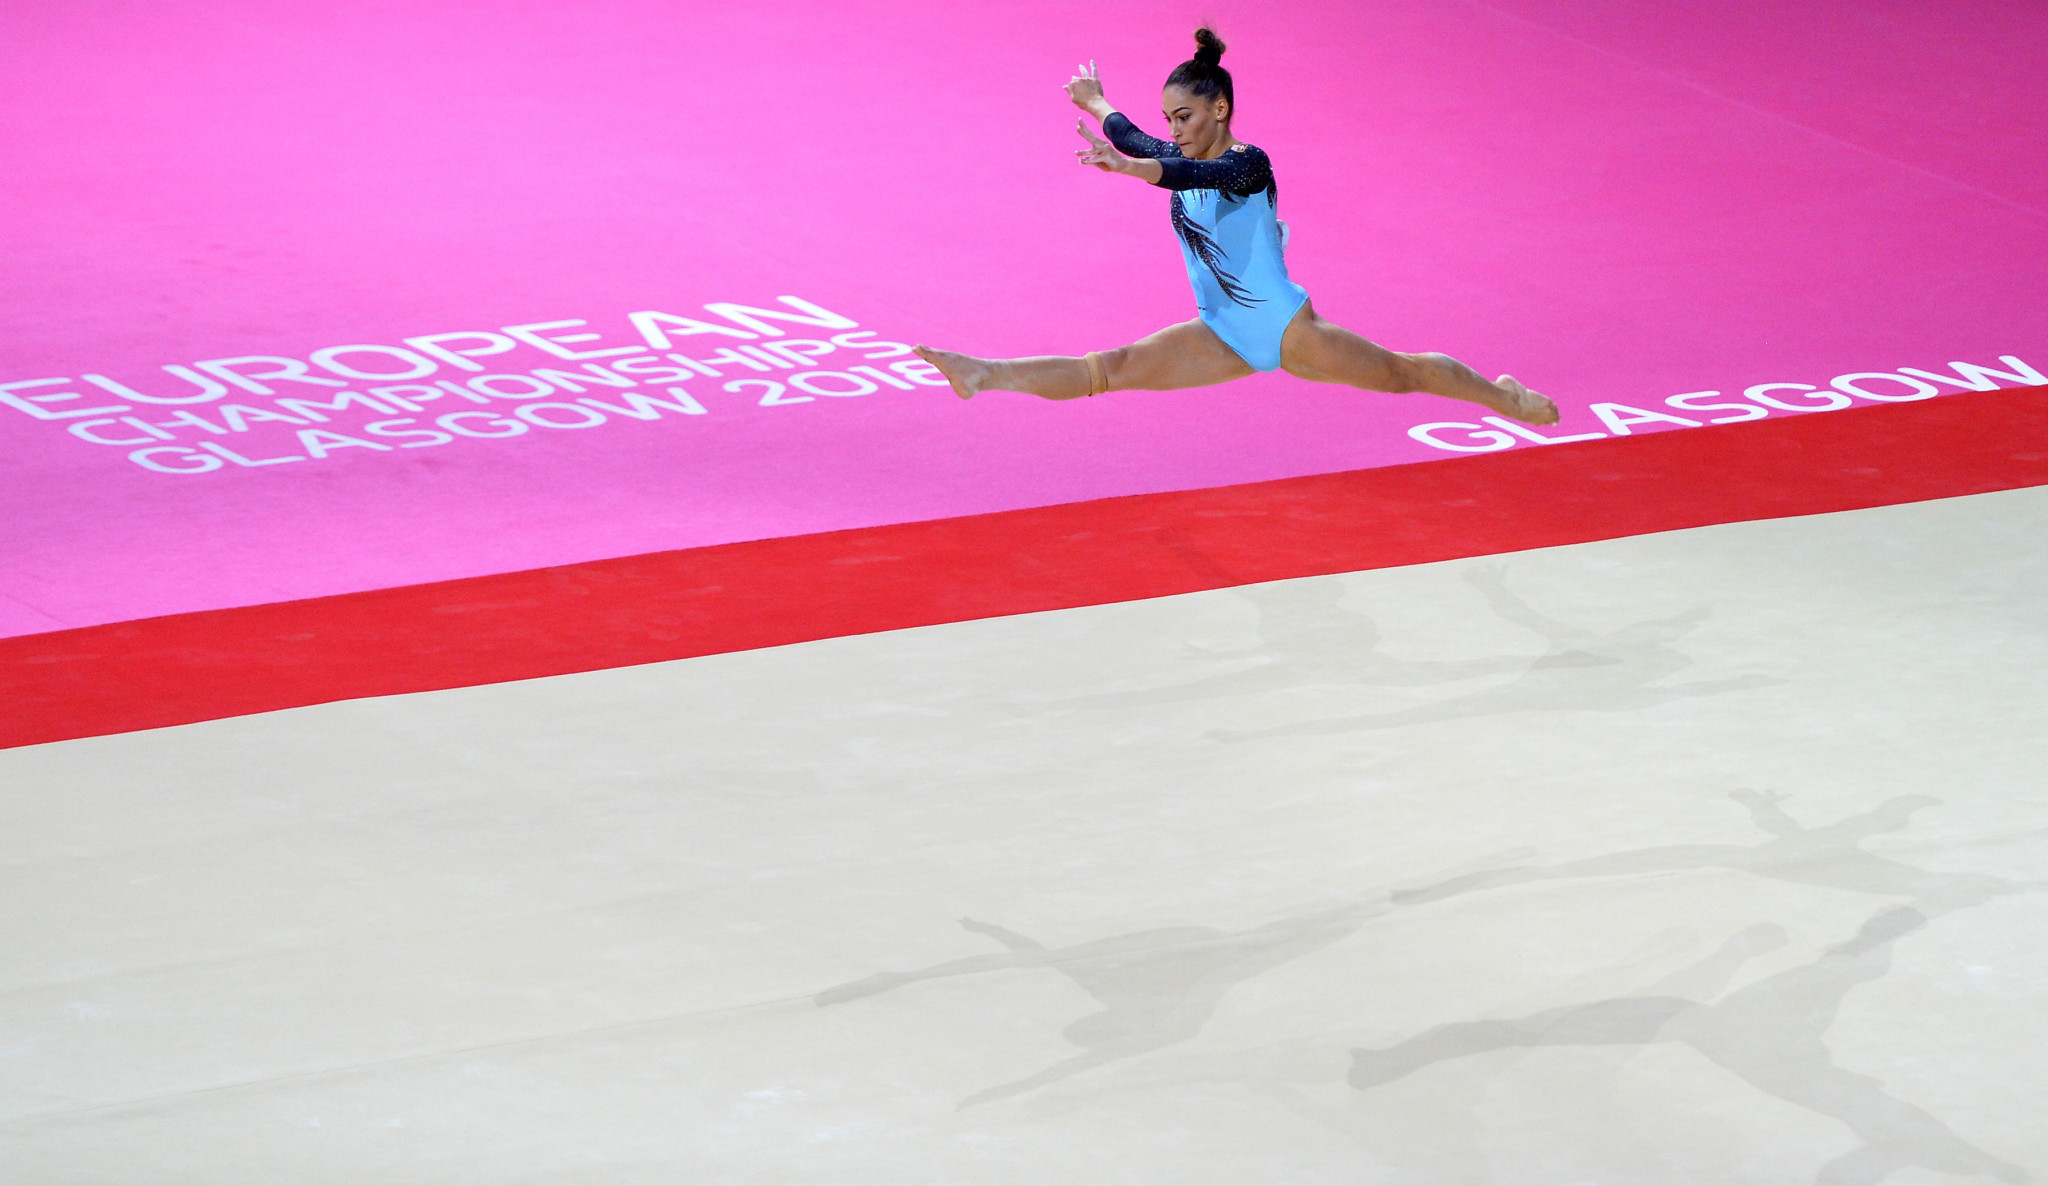 Hungarian gymnastics coach given formal warning by FIG after abuse allegations